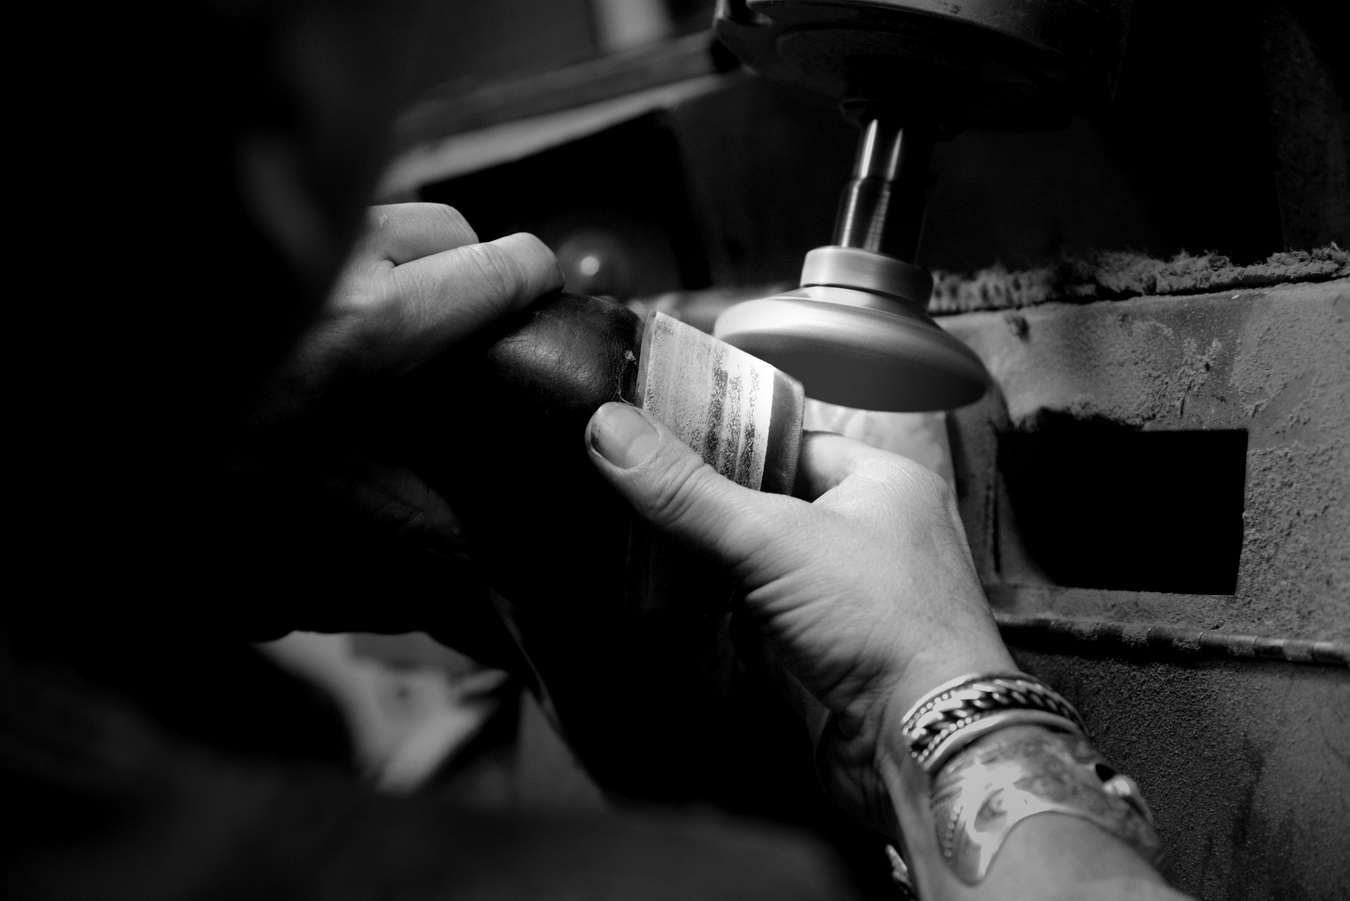 Polishing handmade boots